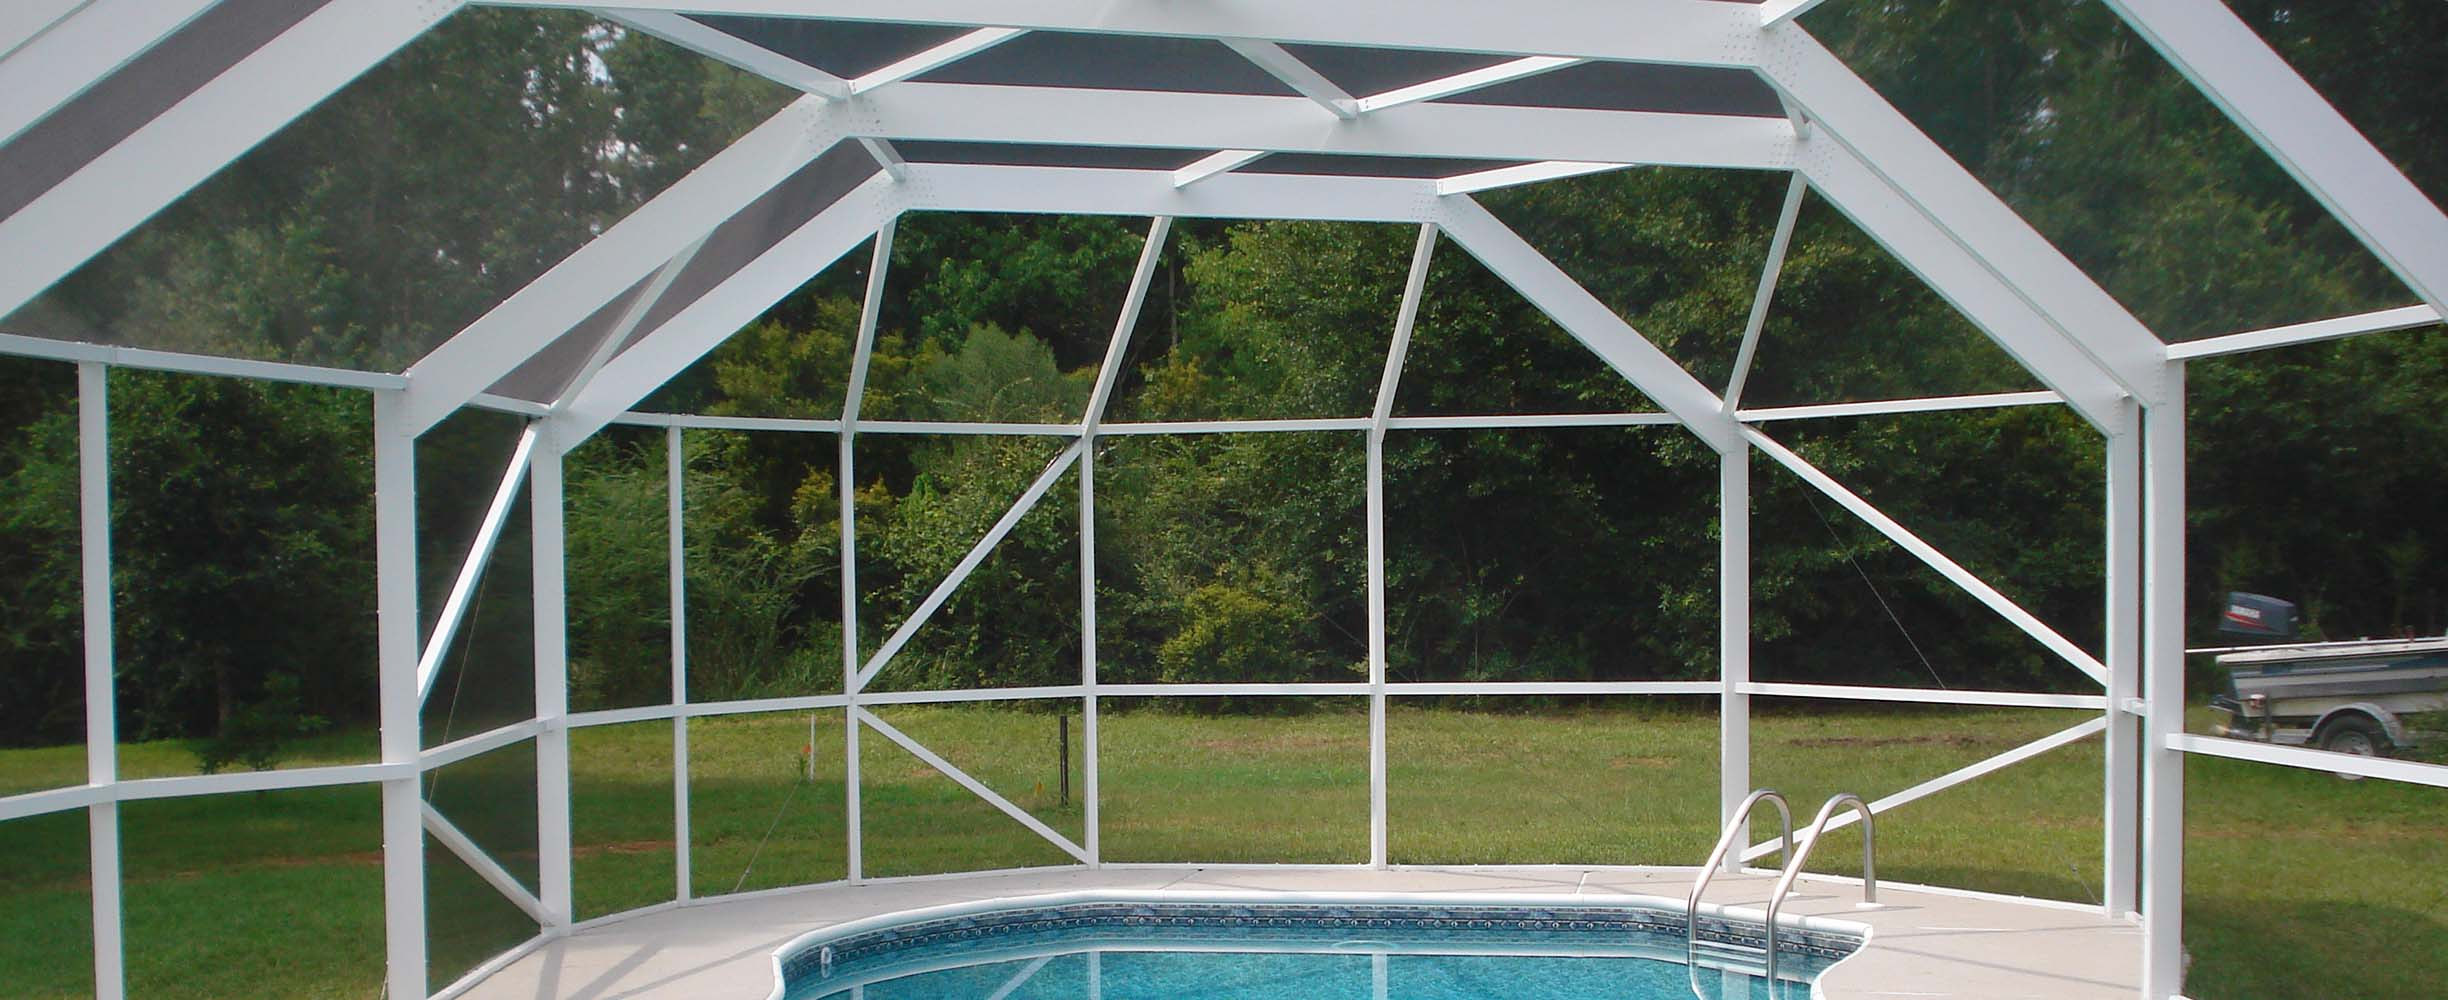 Pool enclosure specifically designed to fit th epool and top stand the Southern weather